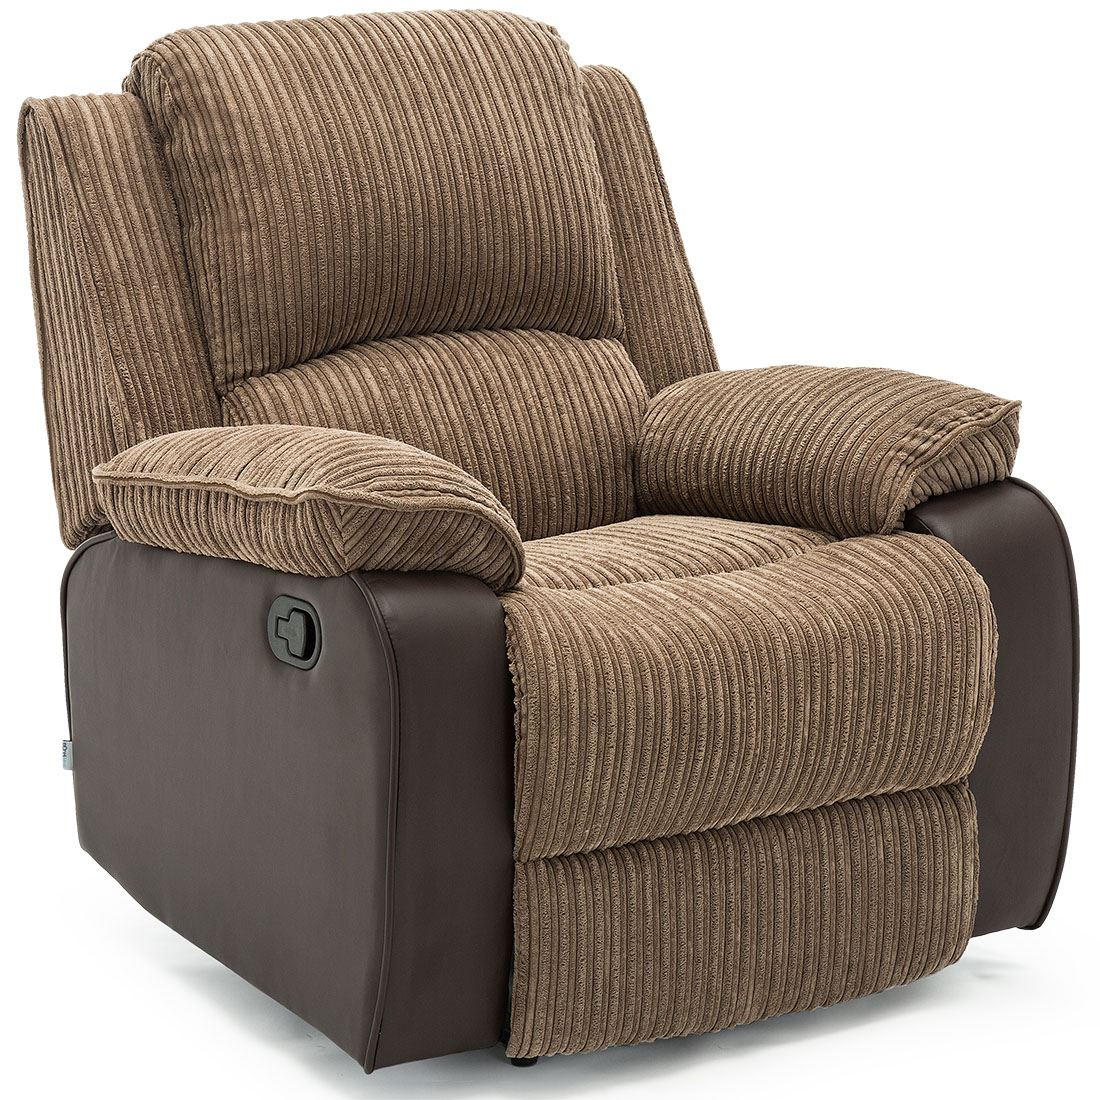 electric recliner sofa not working the designer long eaton reviews postana jumbo cord fabric power armchair